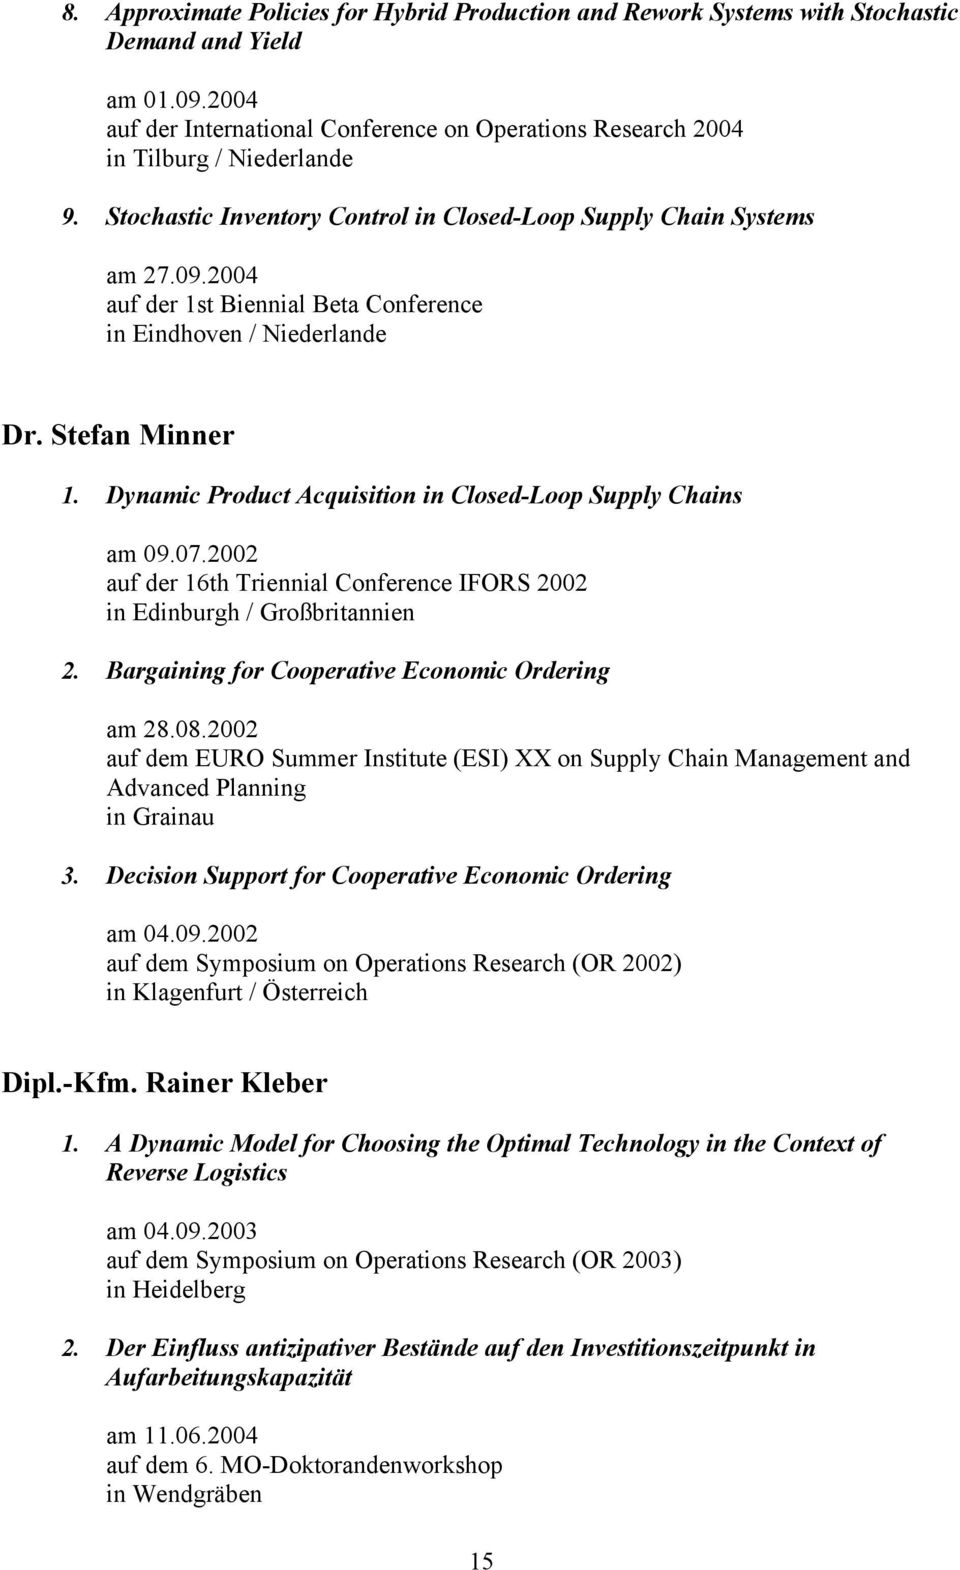 Dynamic Product Acquisition in Closed-Loop Supply Chains am 09.07.2002 auf der 16th Triennial Conference IFORS 2002 in Edinburgh / Großbritannien 2. Bargaining for Cooperative Economic Ordering am 28.